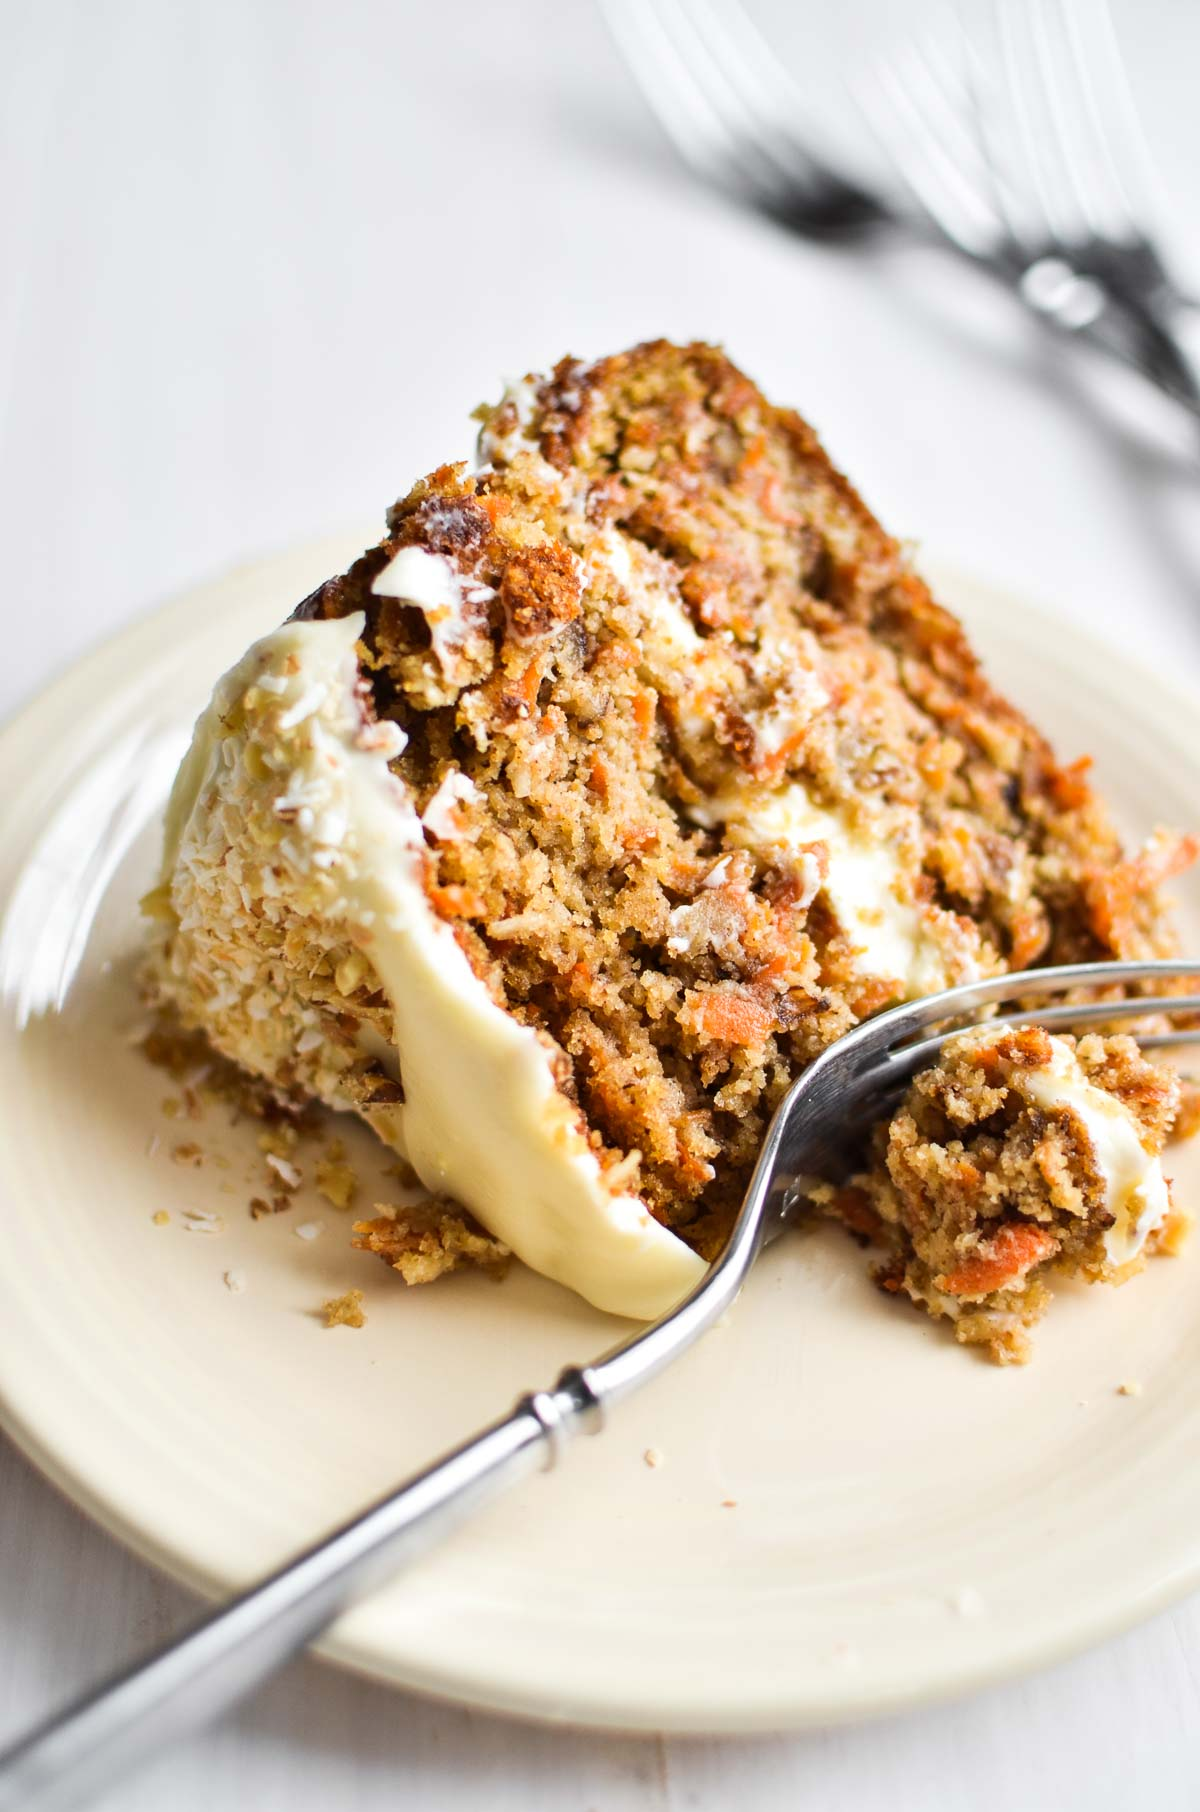 A slice of Gluten Free Carrot Cake with Cream Cheese Frosting